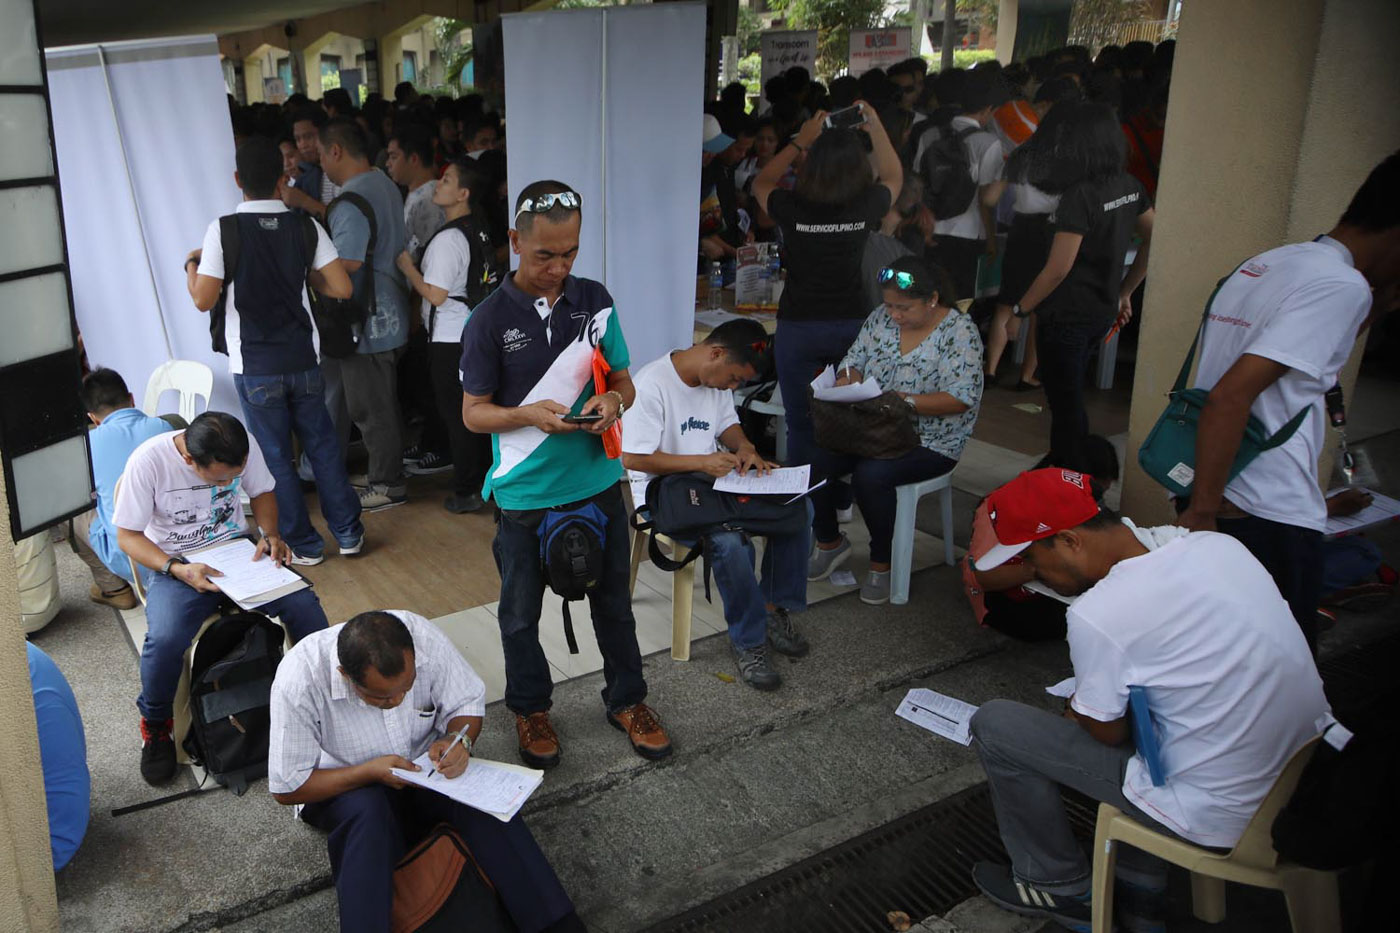 Hundreds of job seekers trooped to Quezon City Hall to look for a vacant job in DOLE's Job Fair. Photo by Darren langit/Rappler